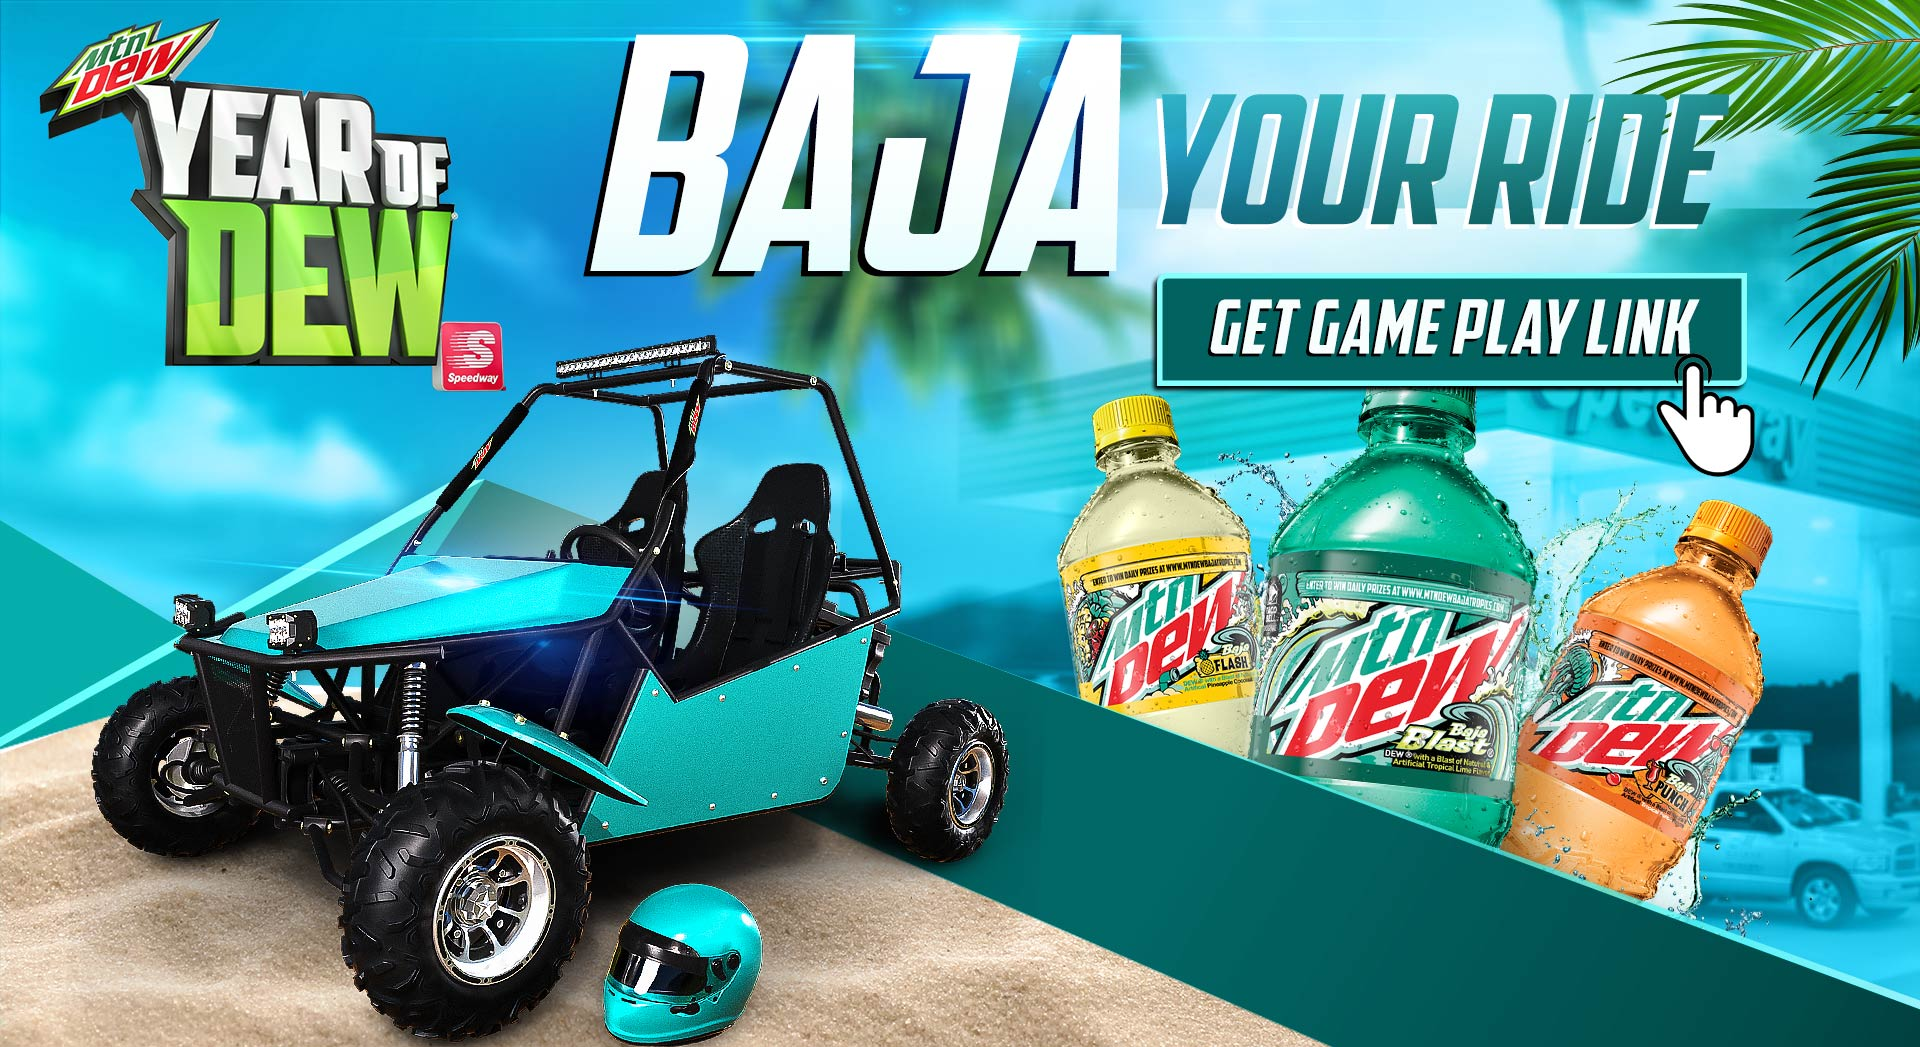 Baja_Your_Ride_Year_of_Dew_Sweeps